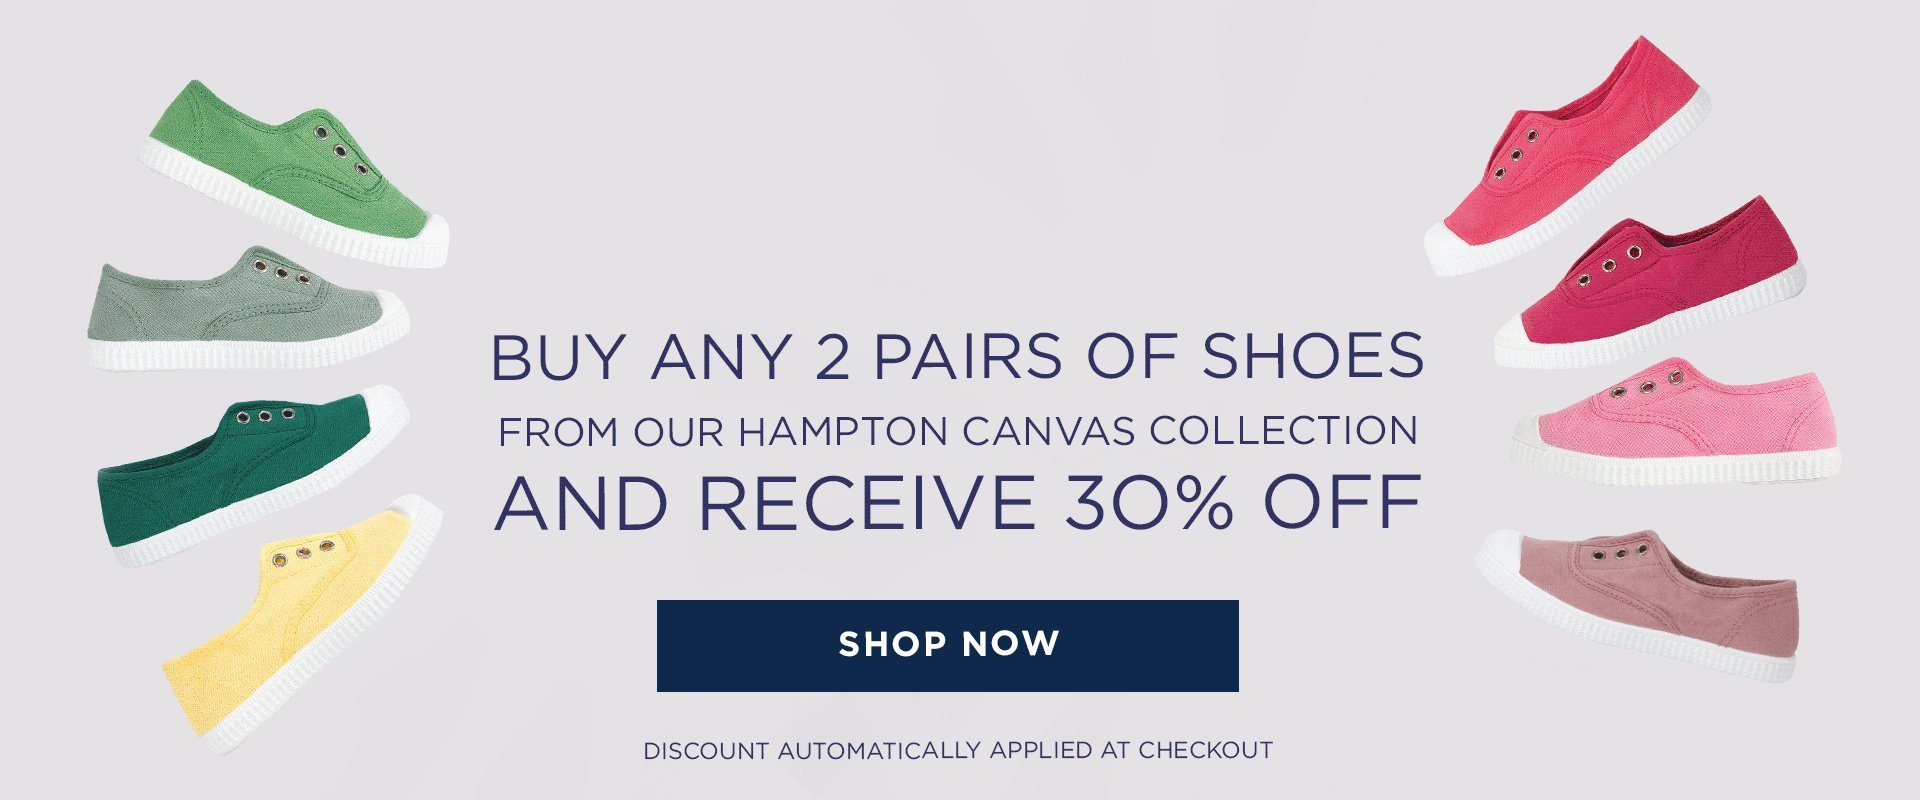 Hampton Canvas